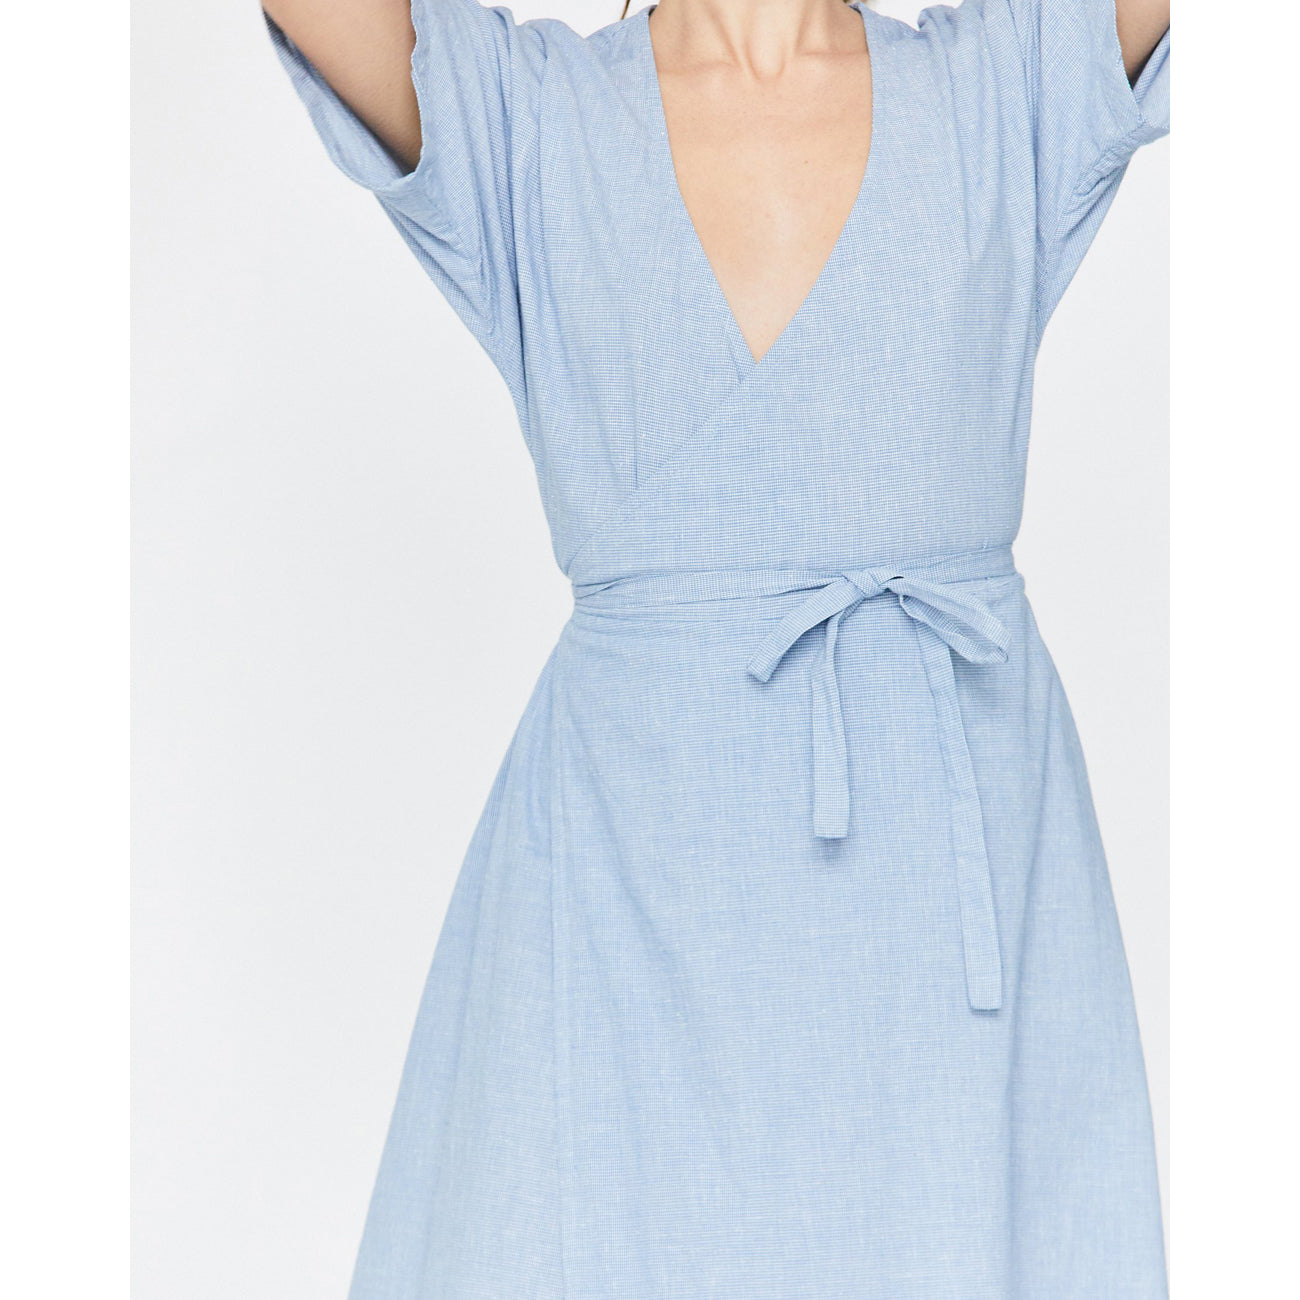 Esby Monet Wrap Dress in Ocean Blue Micro Houndstooth